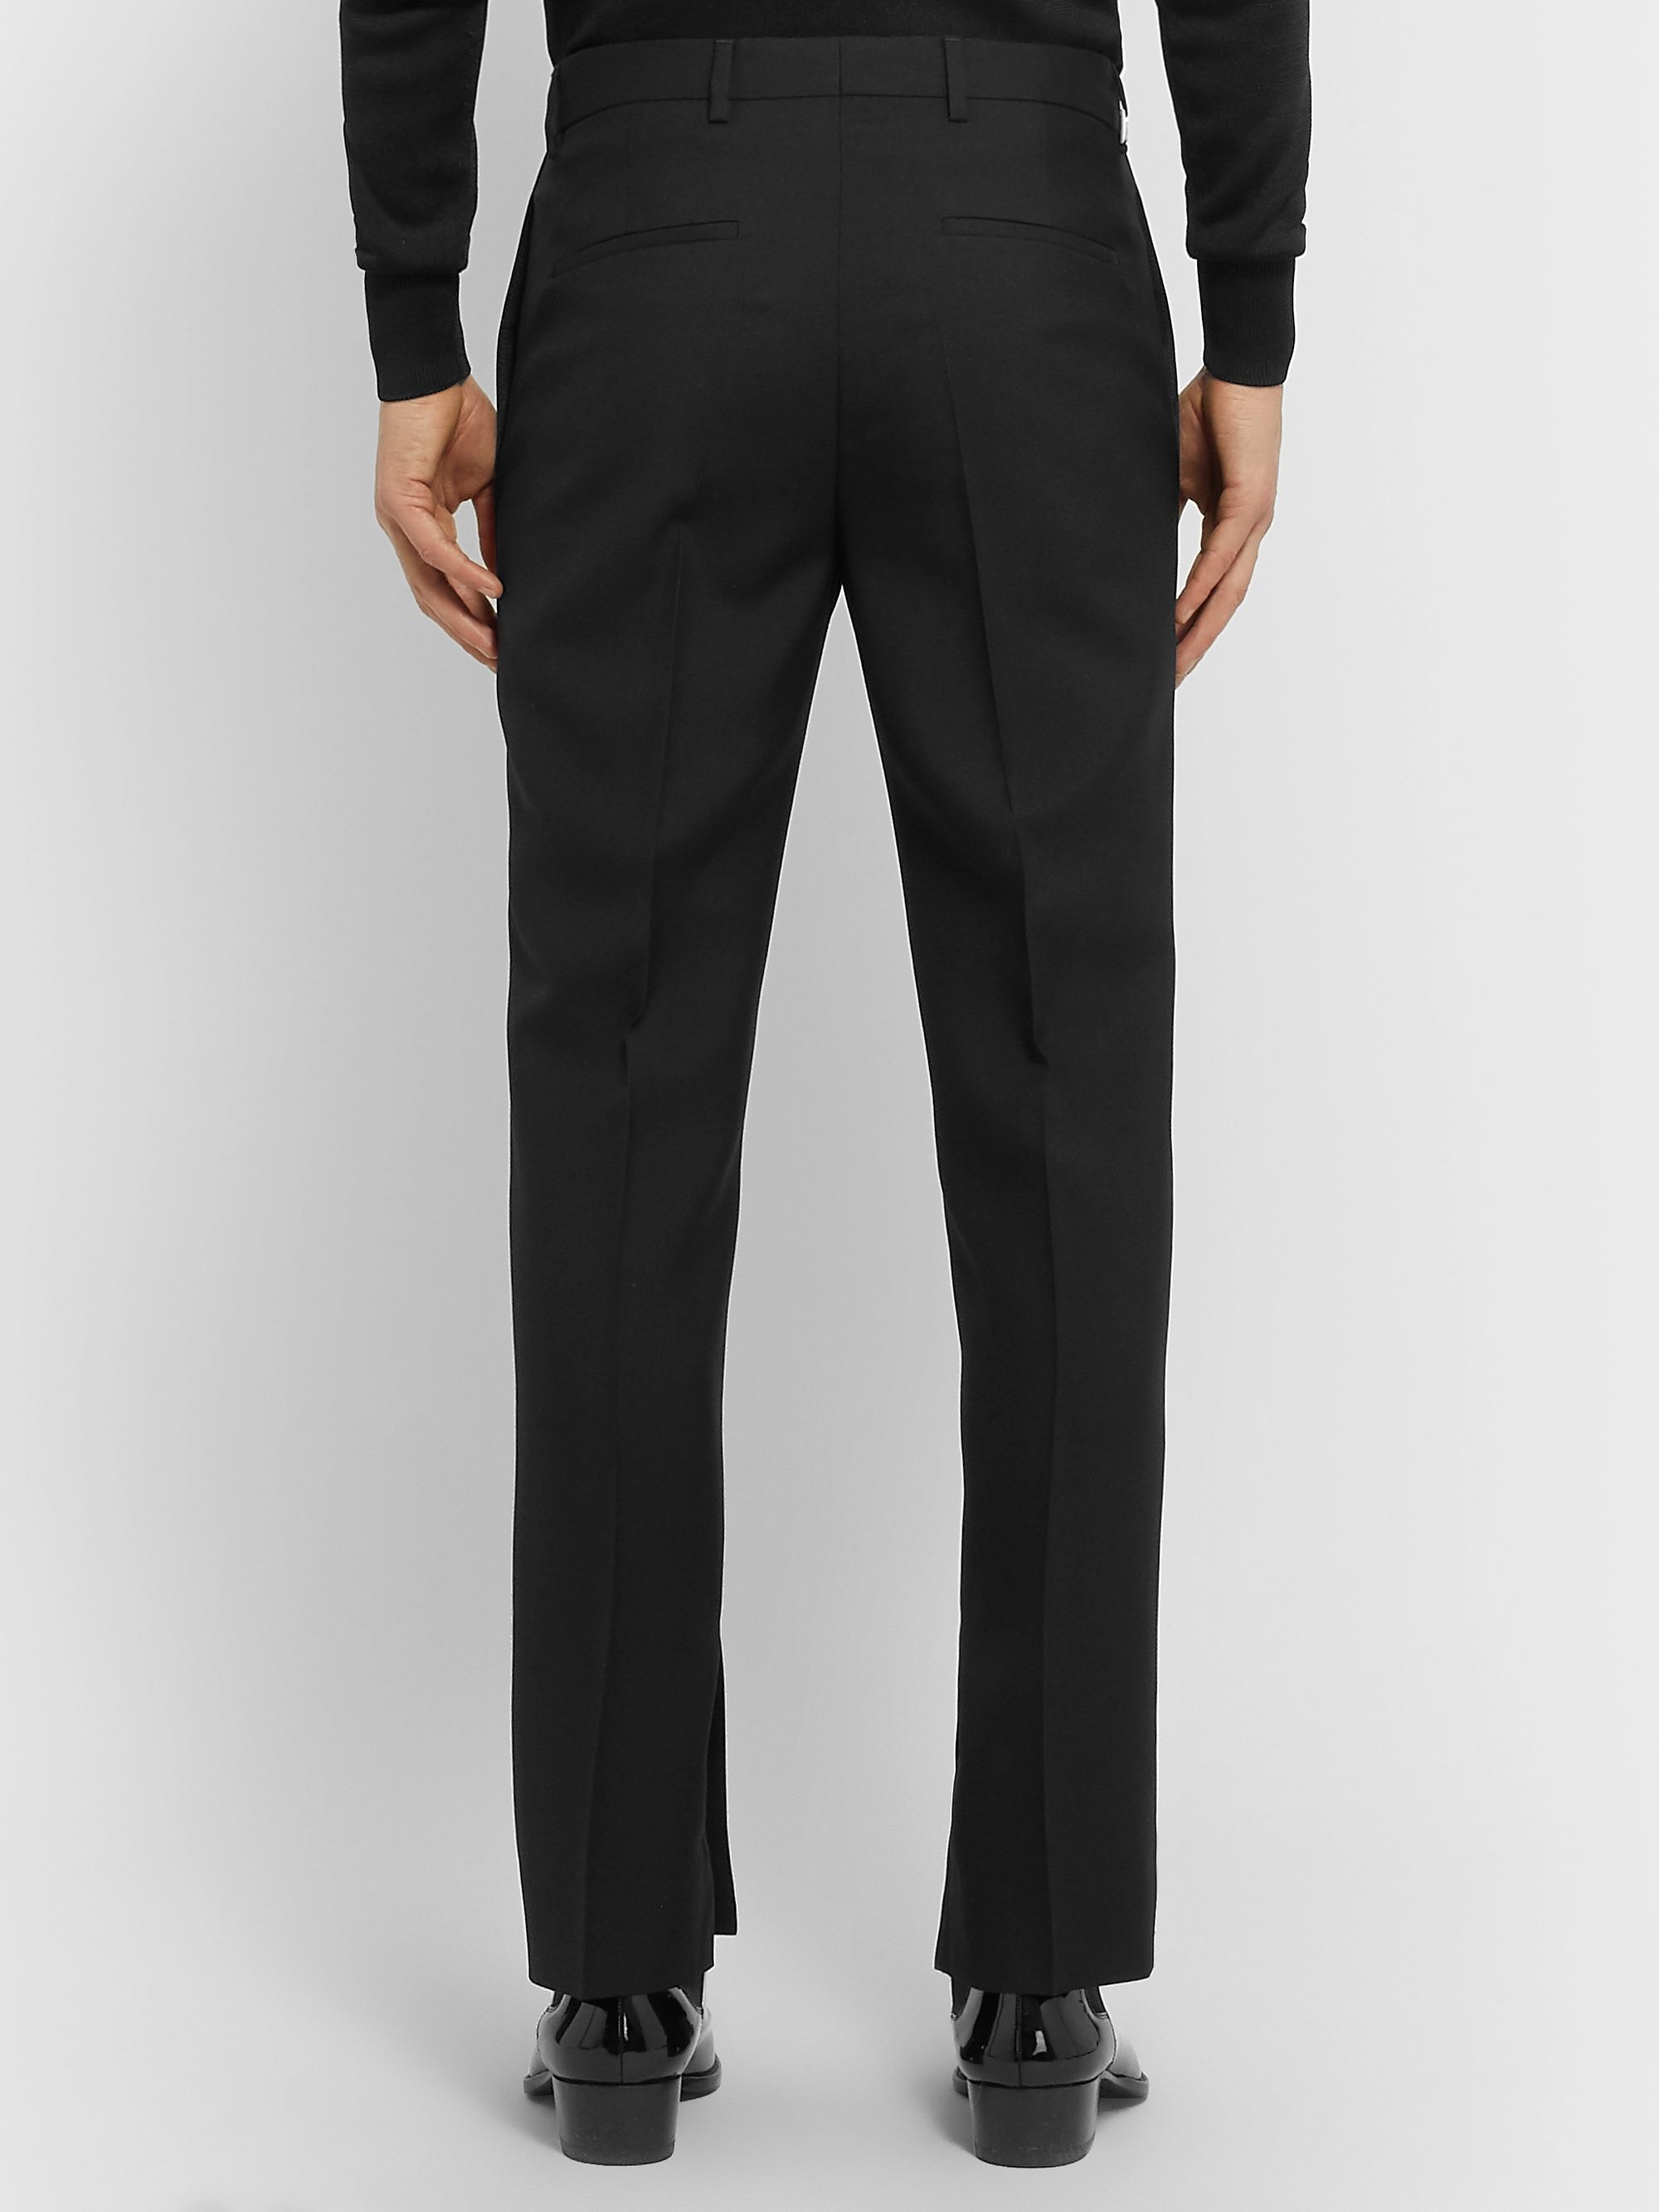 Givenchy Slim-Fit Satin-Trimmed Floral-Jacquard and Wool-Twill Tuxedo